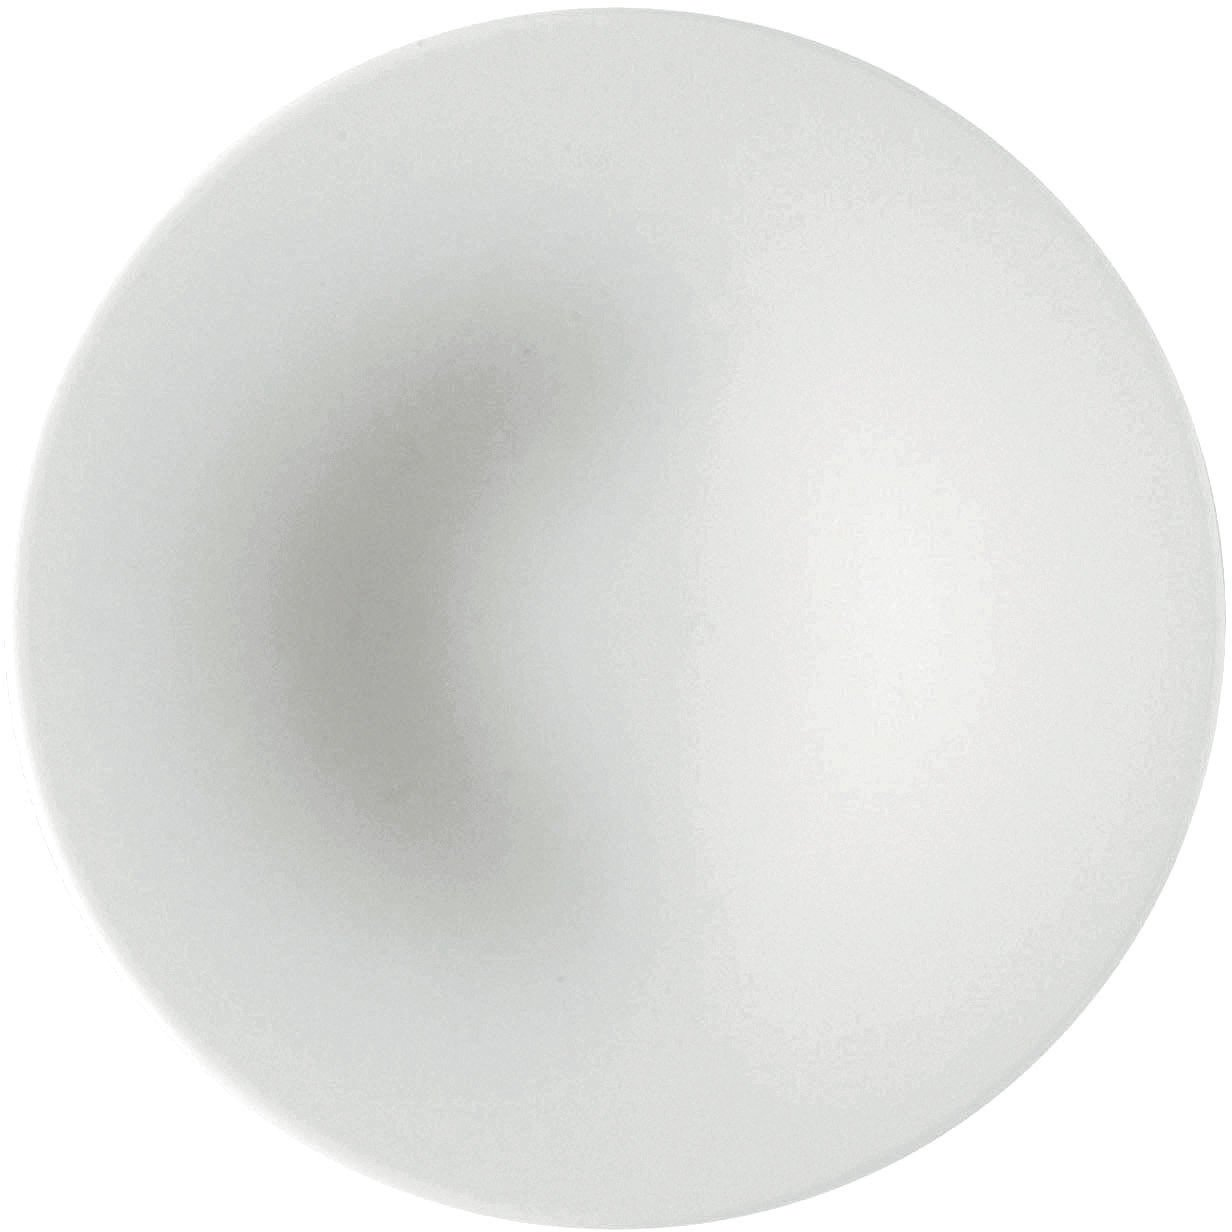 Alessi''KU'' Saucers For Mocha Cup in Porcelain (Set of 4), White